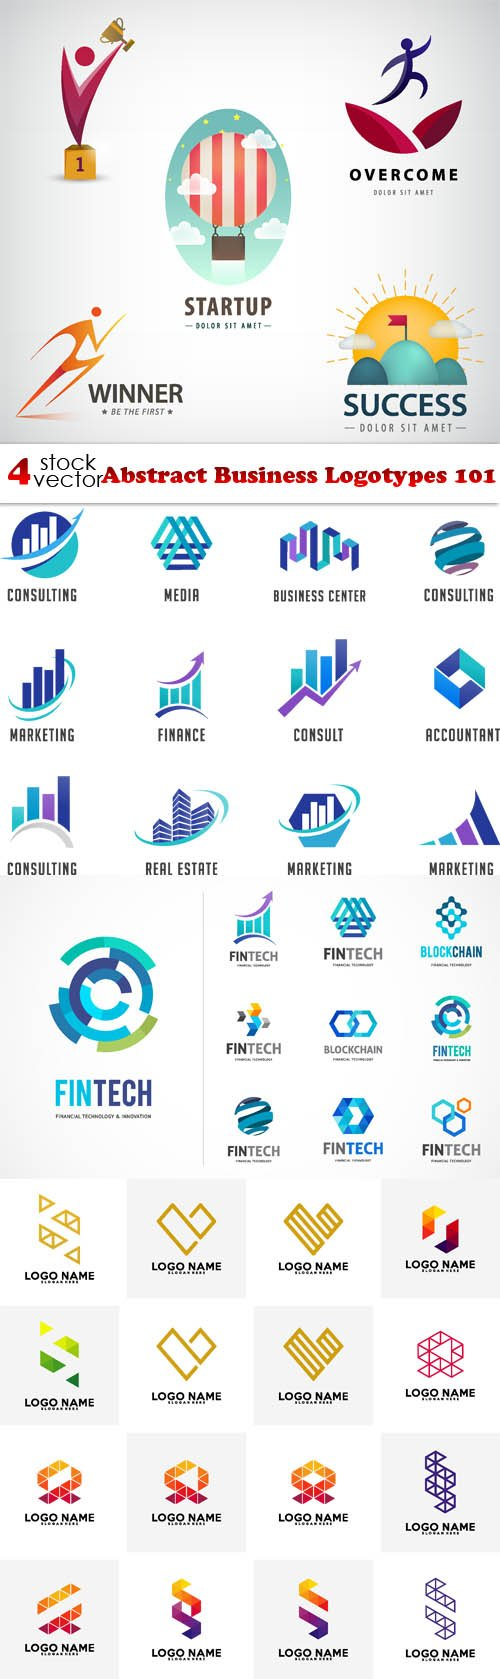 Vectors - Abstract Business Logotypes 101